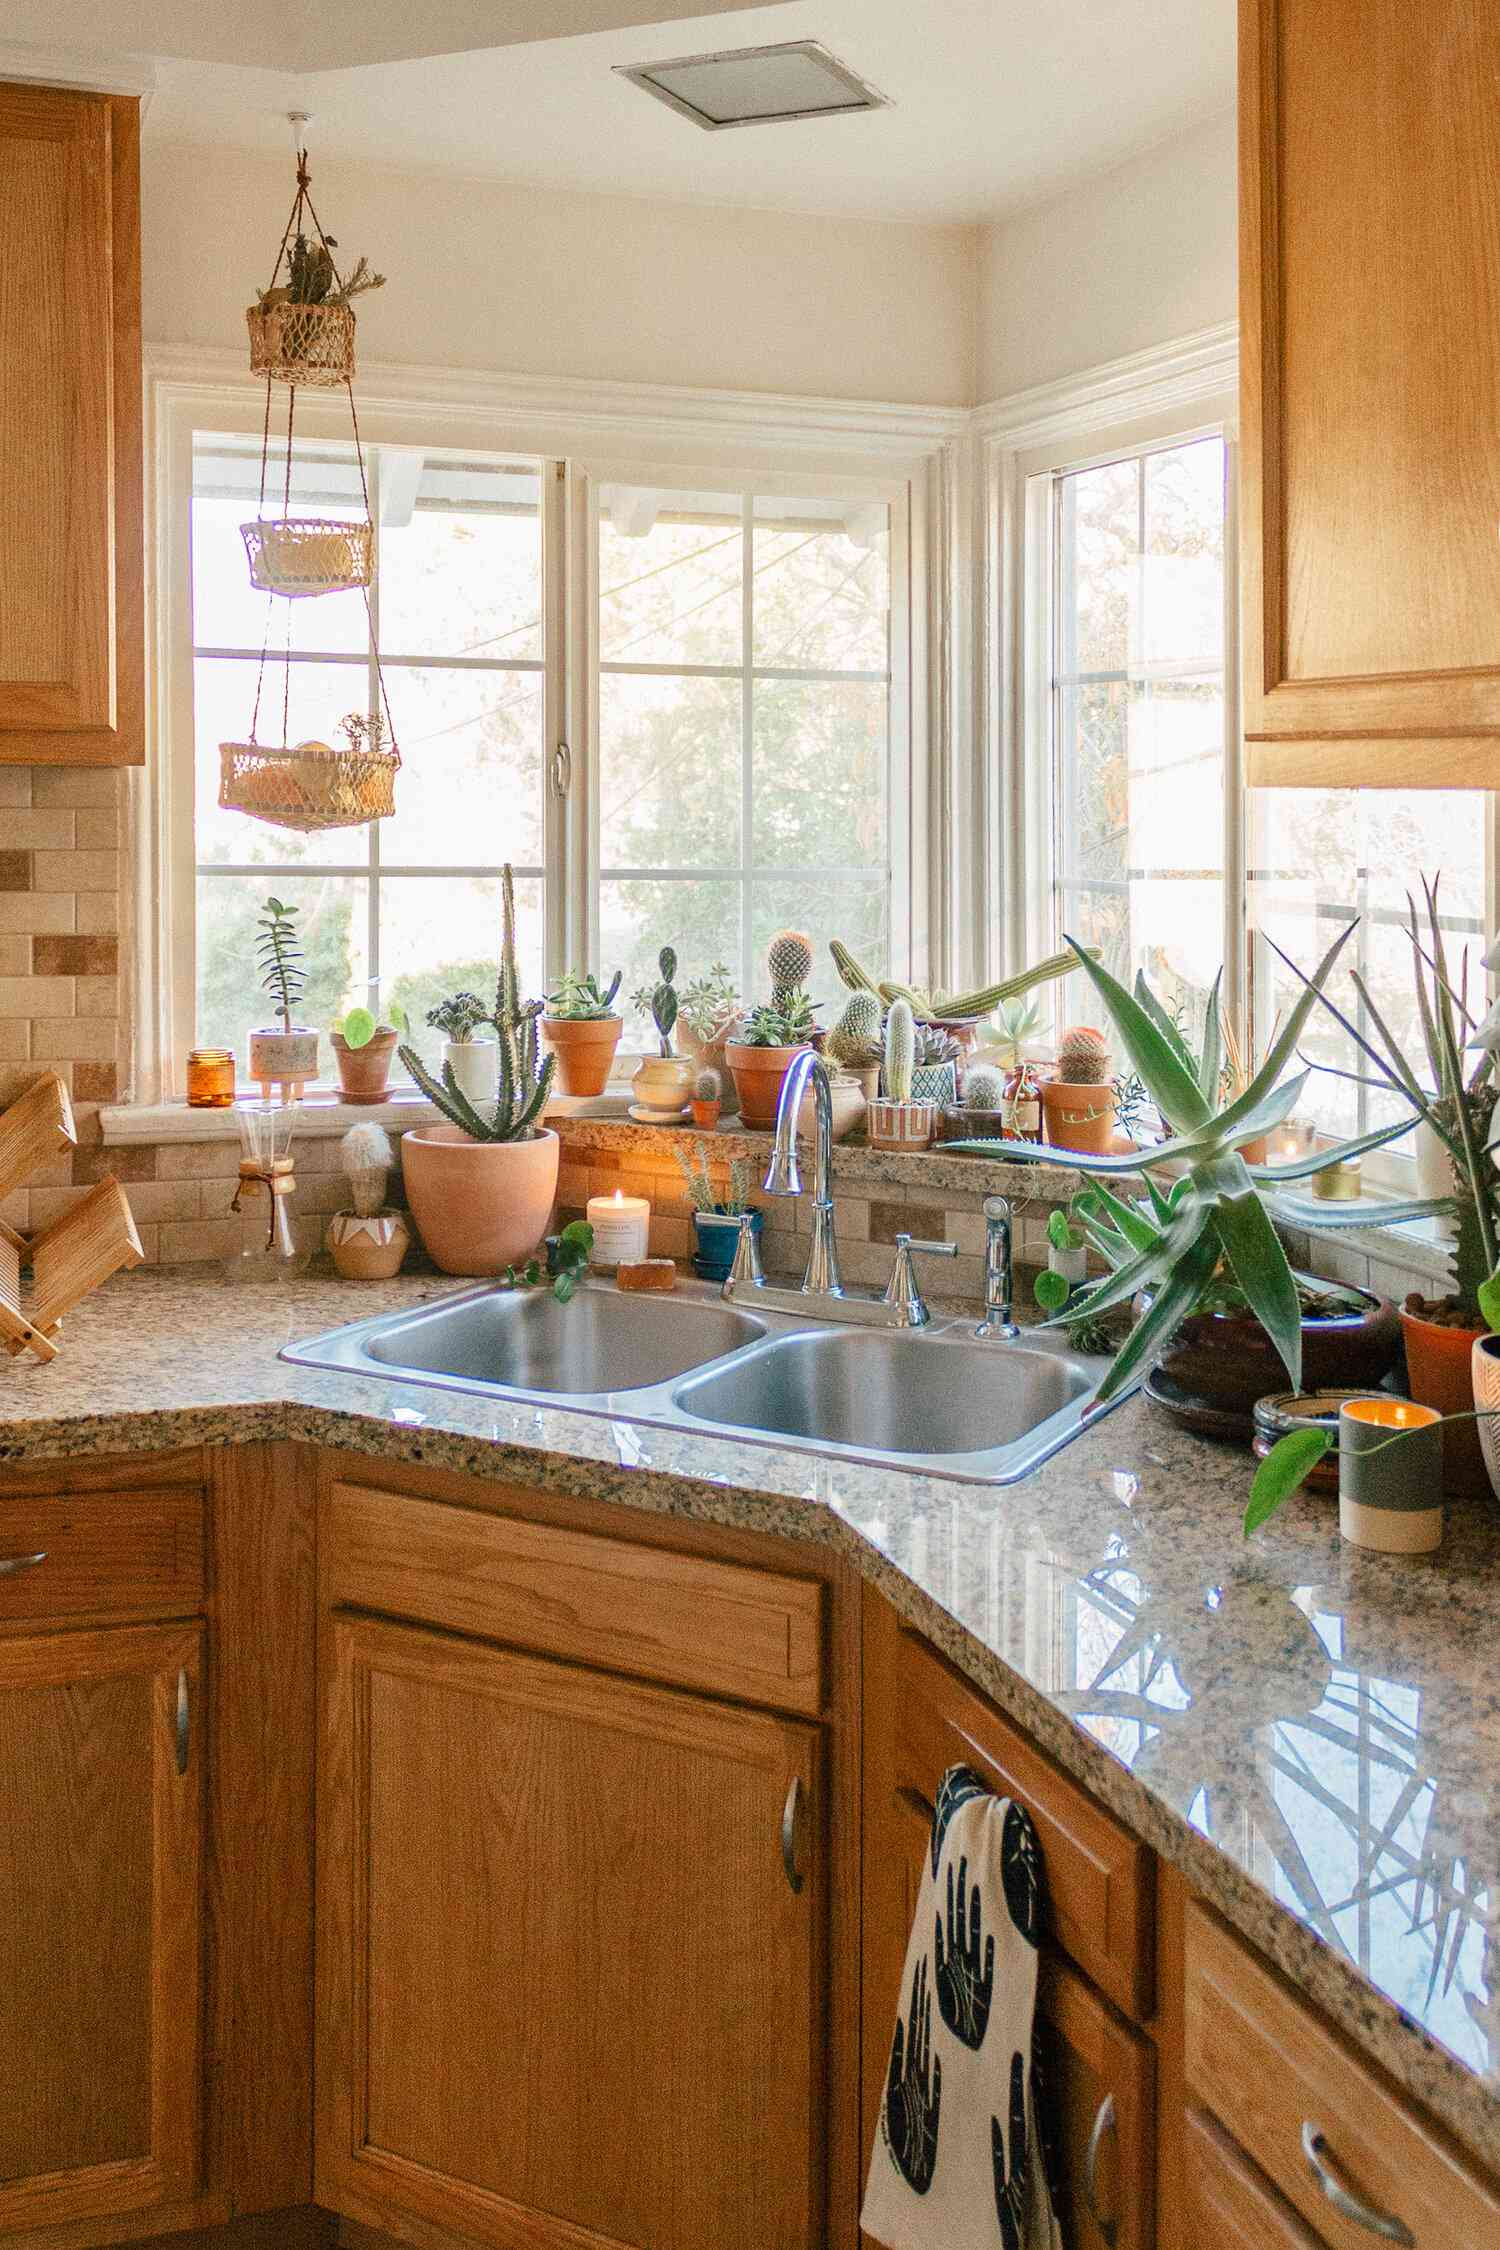 best kitchen ideas - rental kitchen with lots of greenery